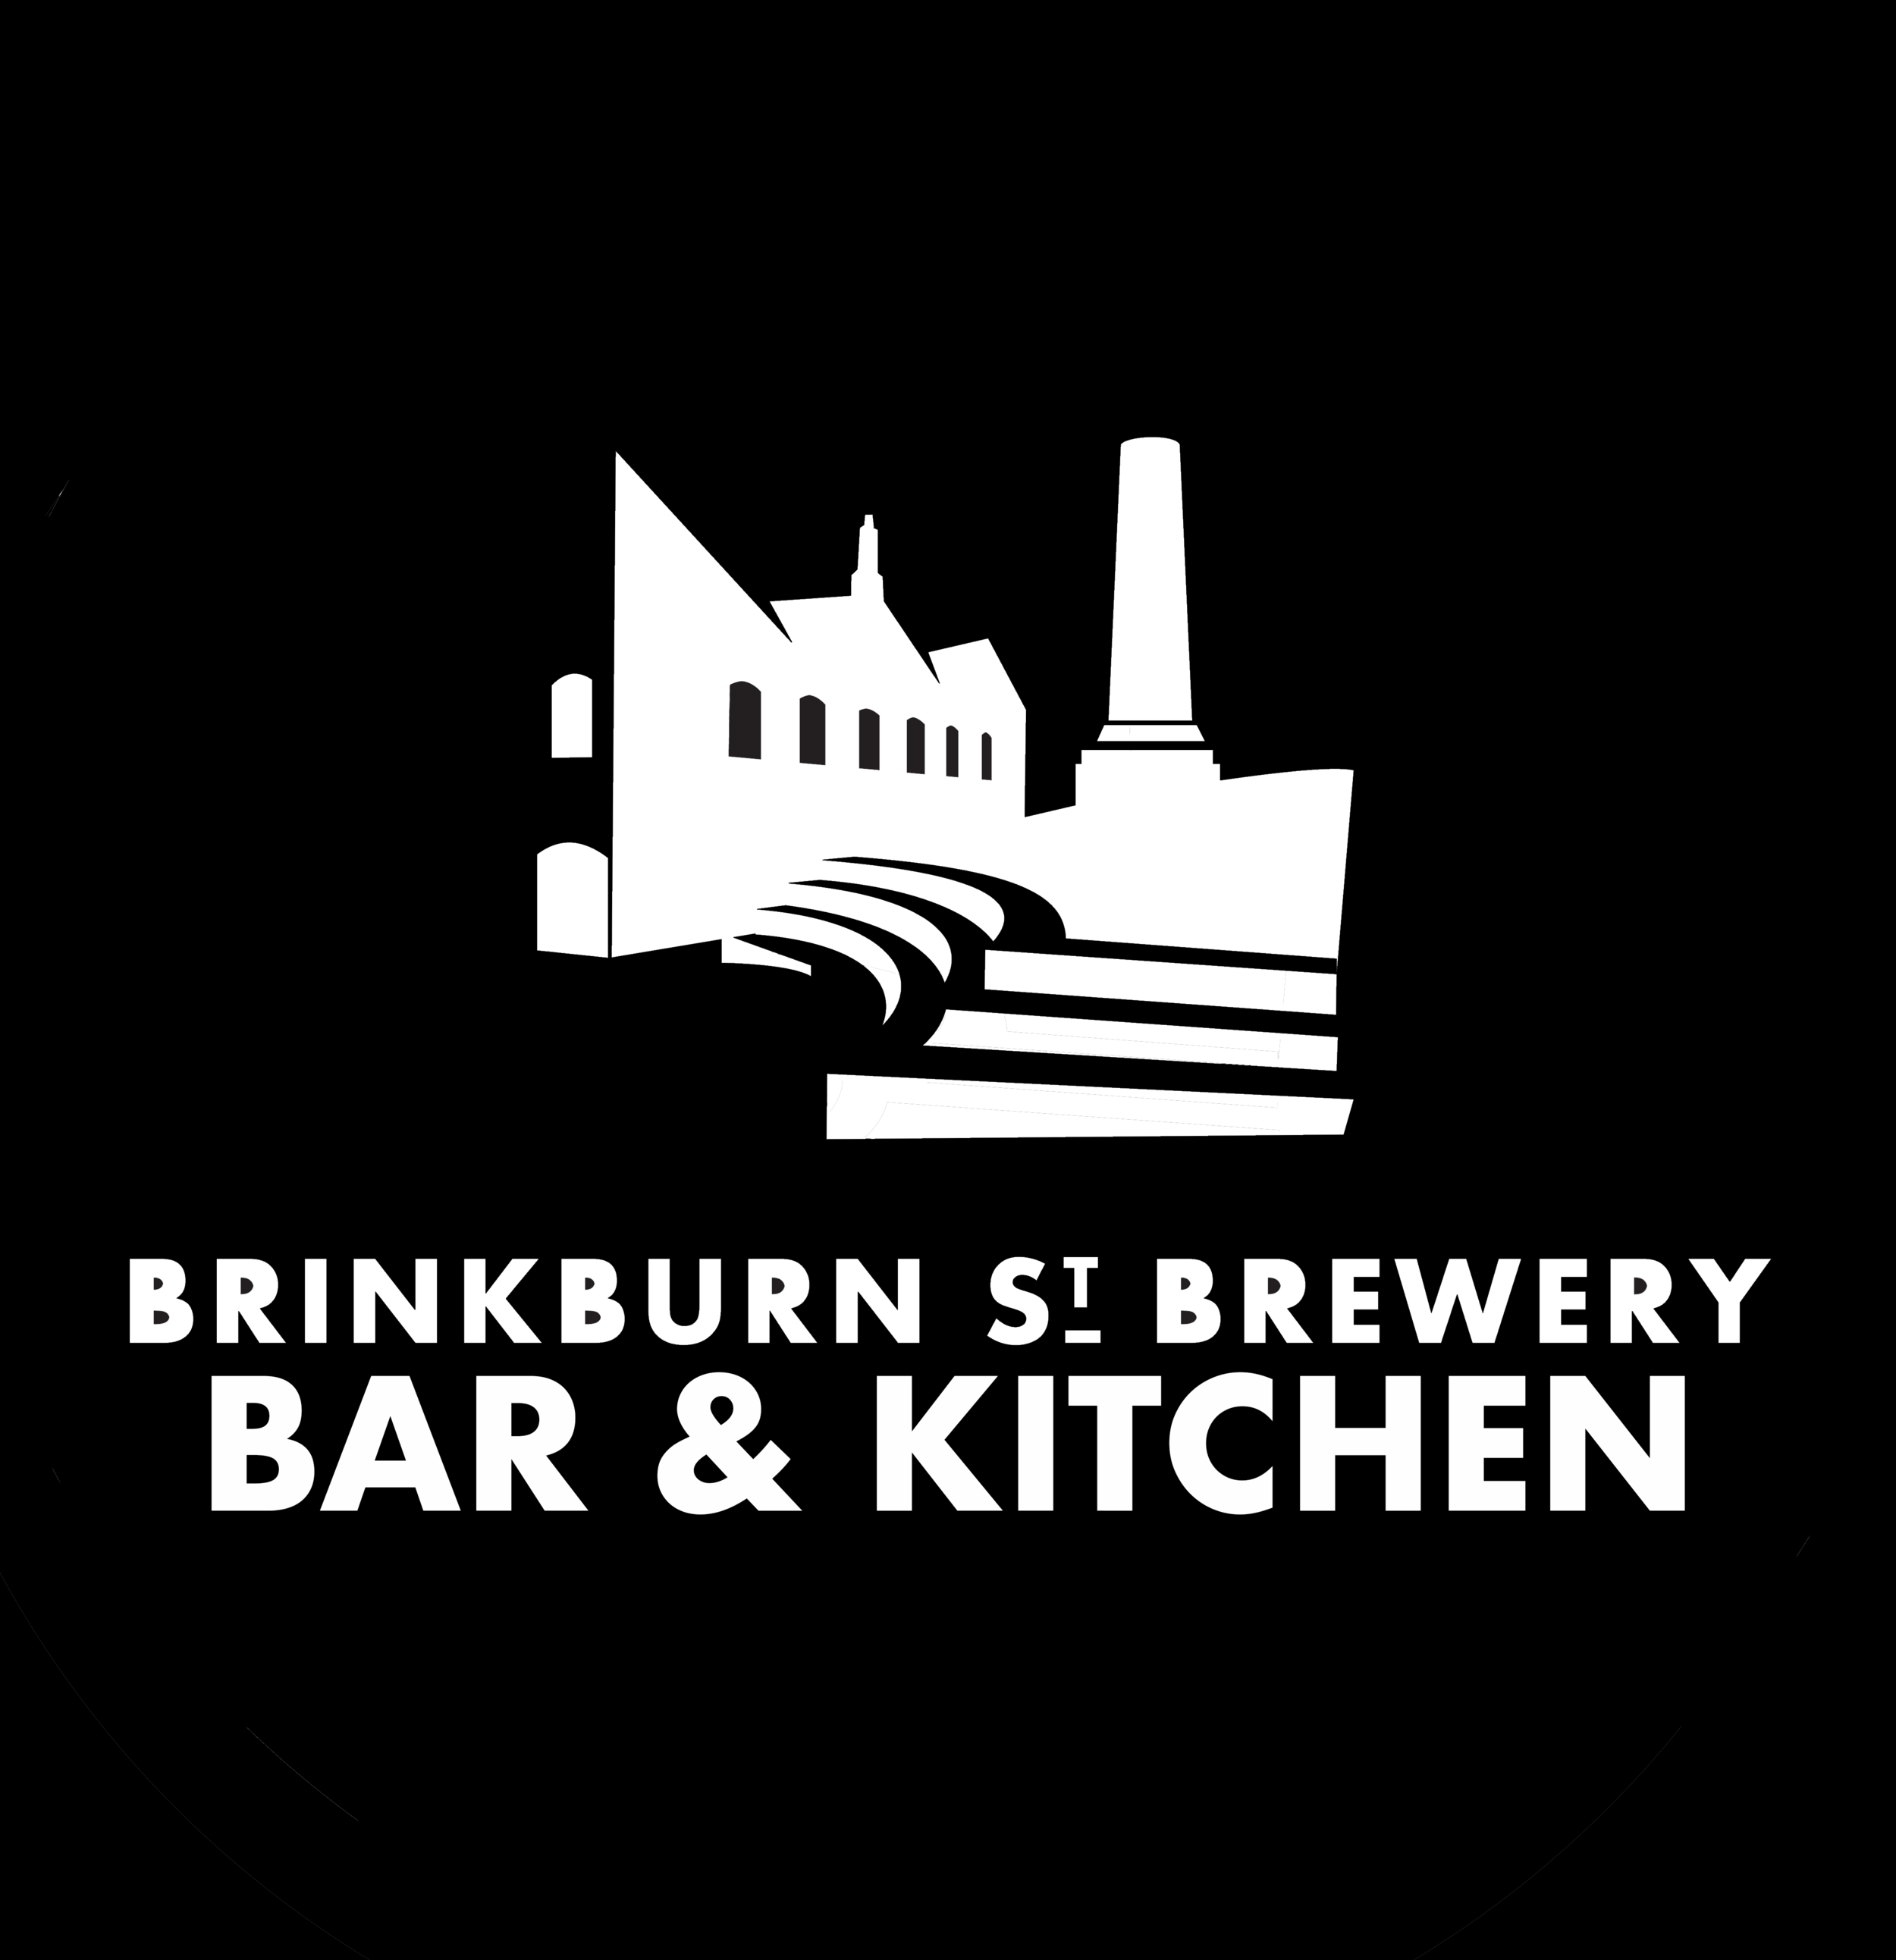 bar and kitchen Logo.jpg